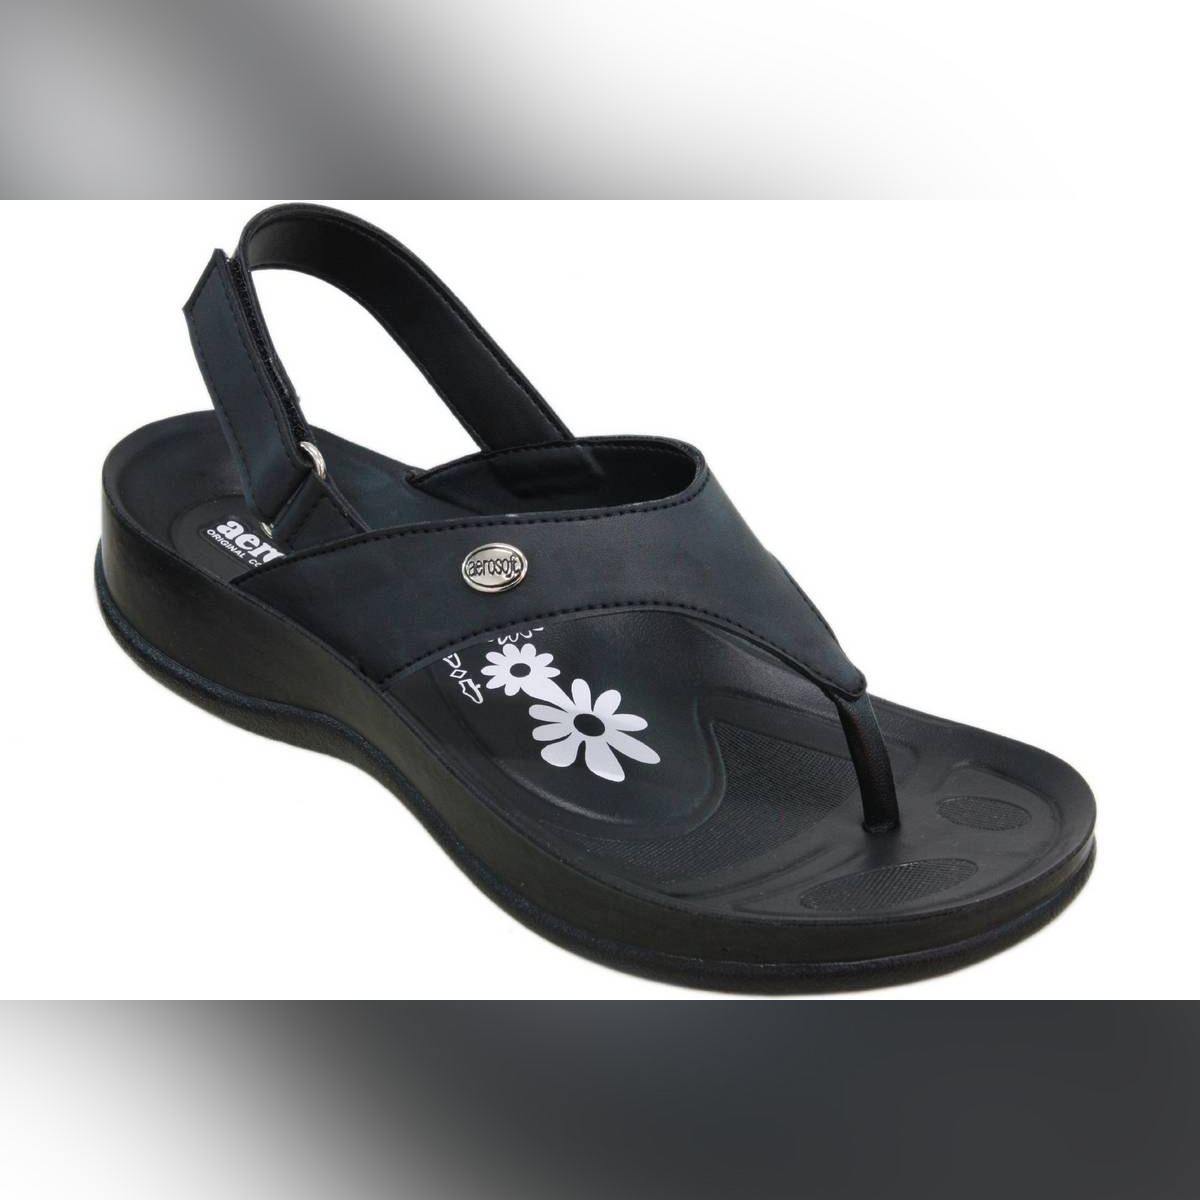 Aerosoft Black Synthetic Leather Sandals For Women S5914